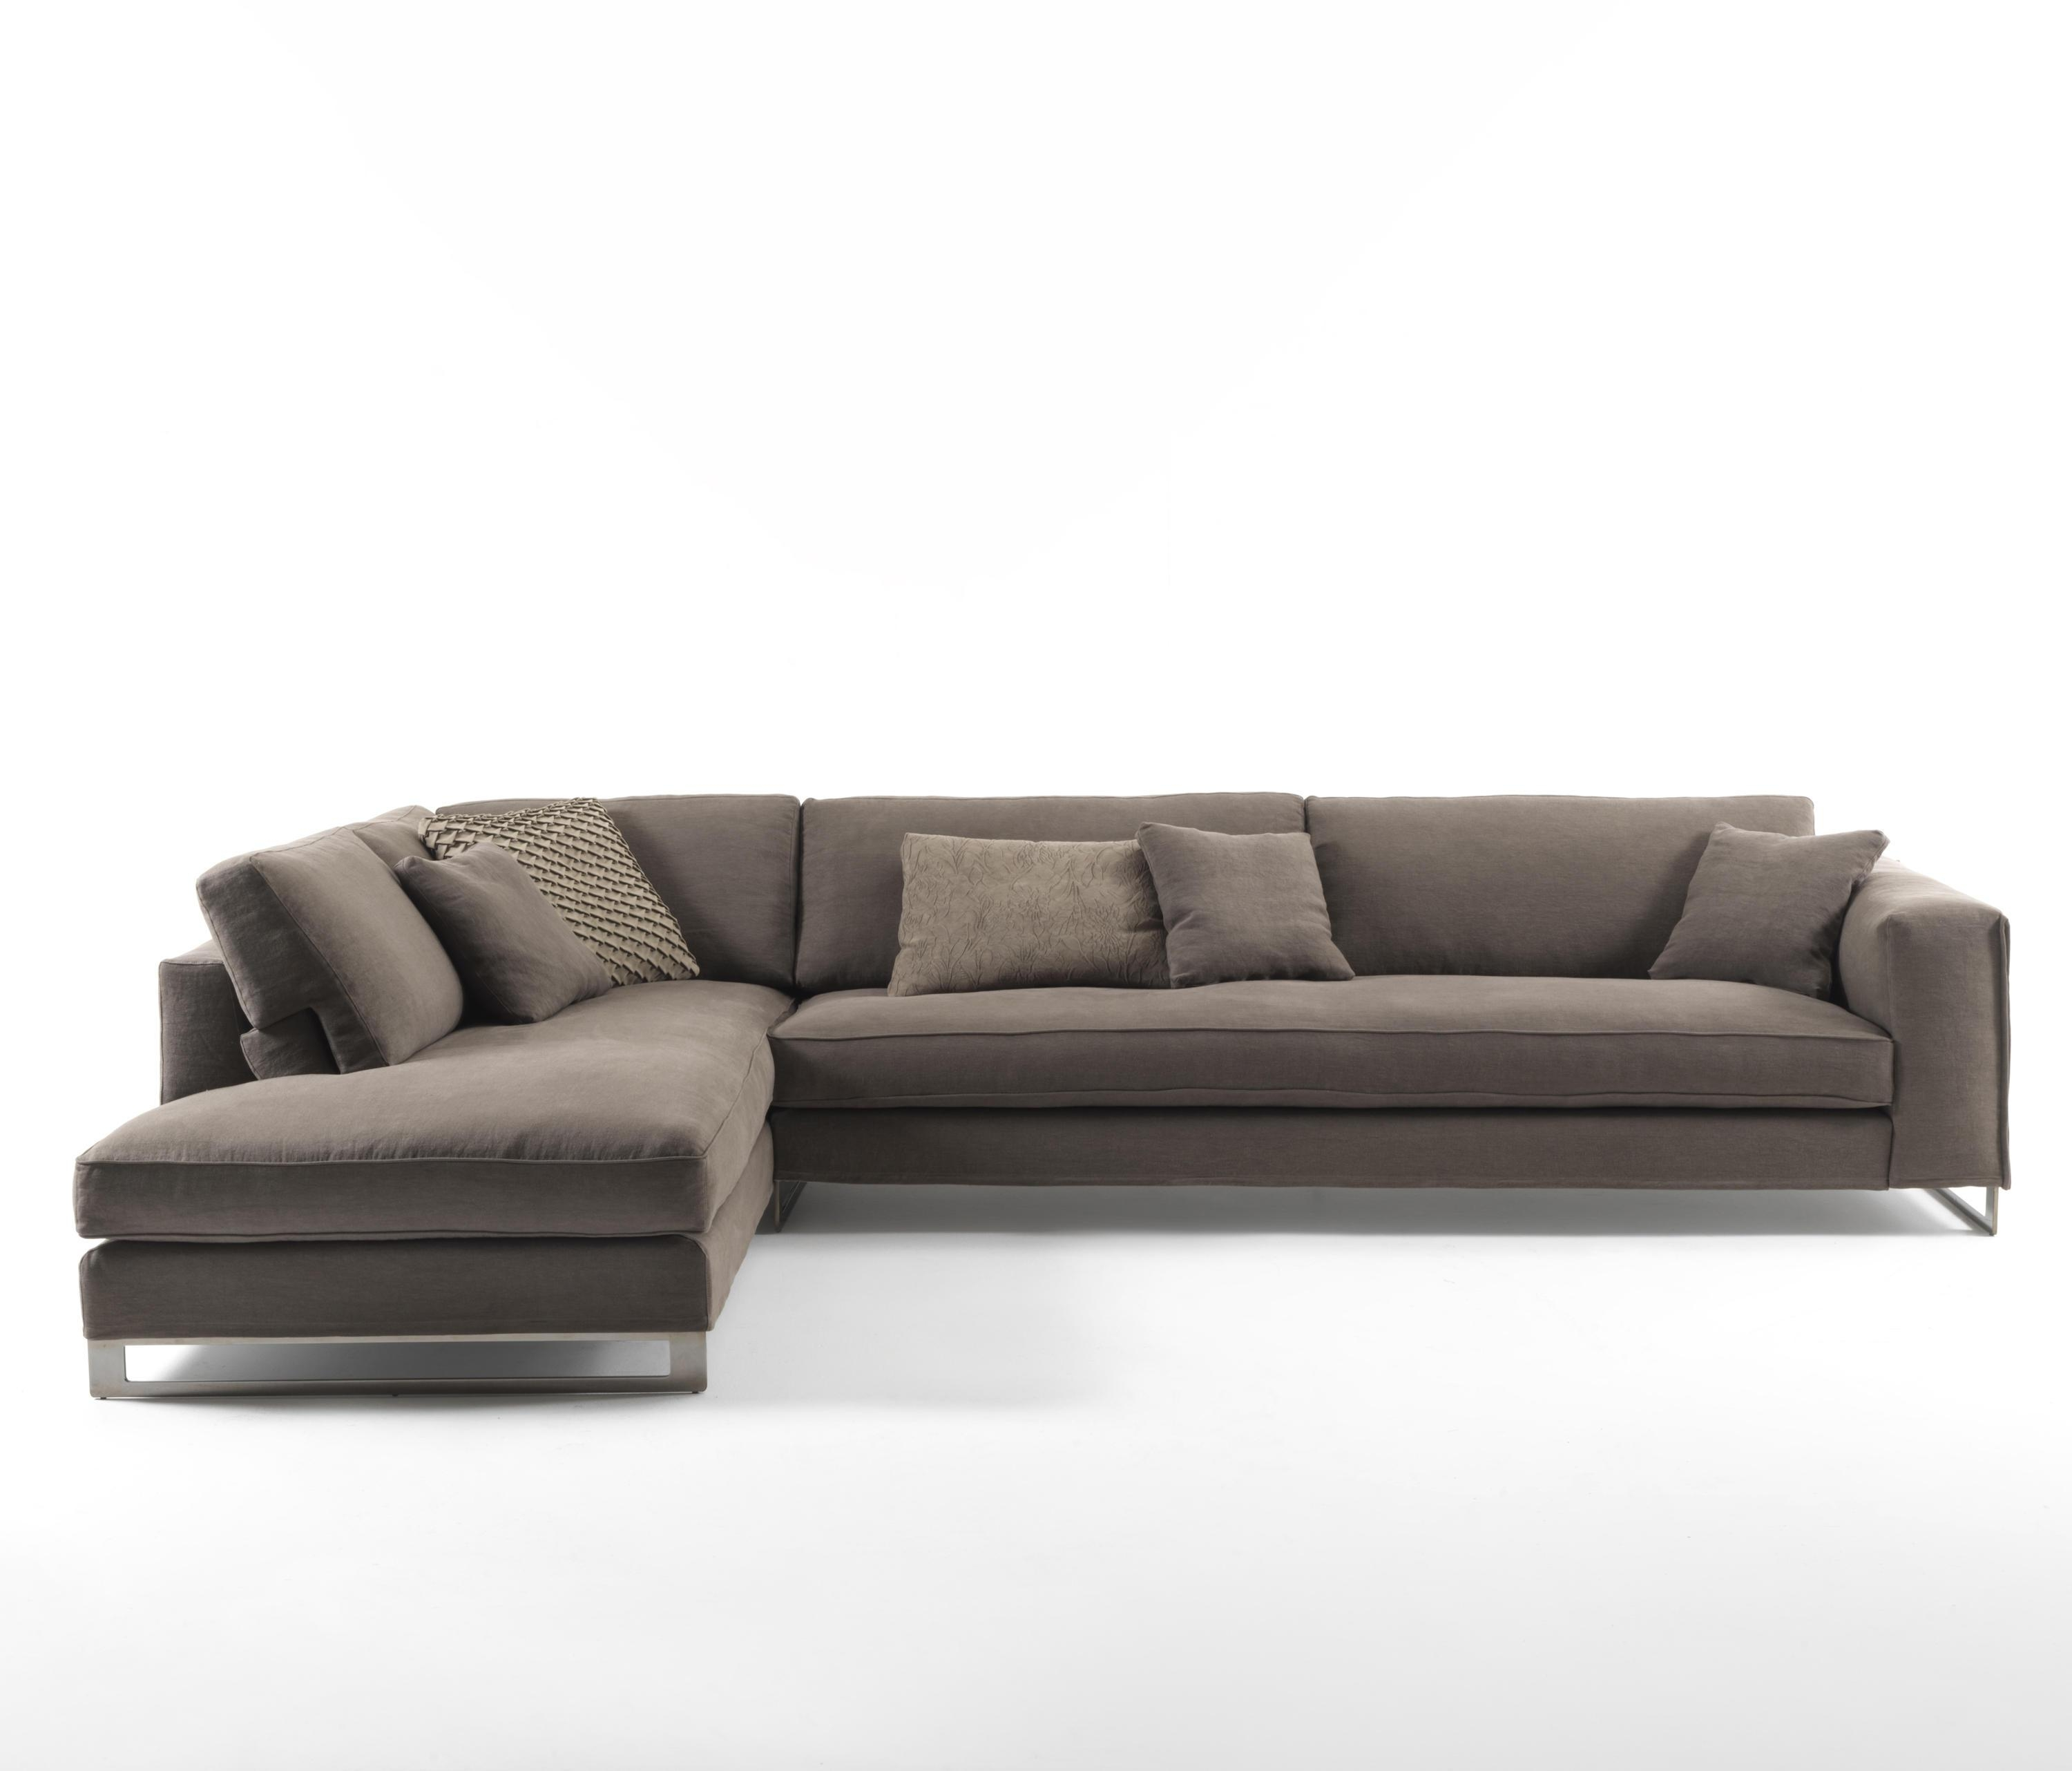 Davis Twin – Sofas From Frigerio | Architonic Intended For Davis Sofas (Image 10 of 20)